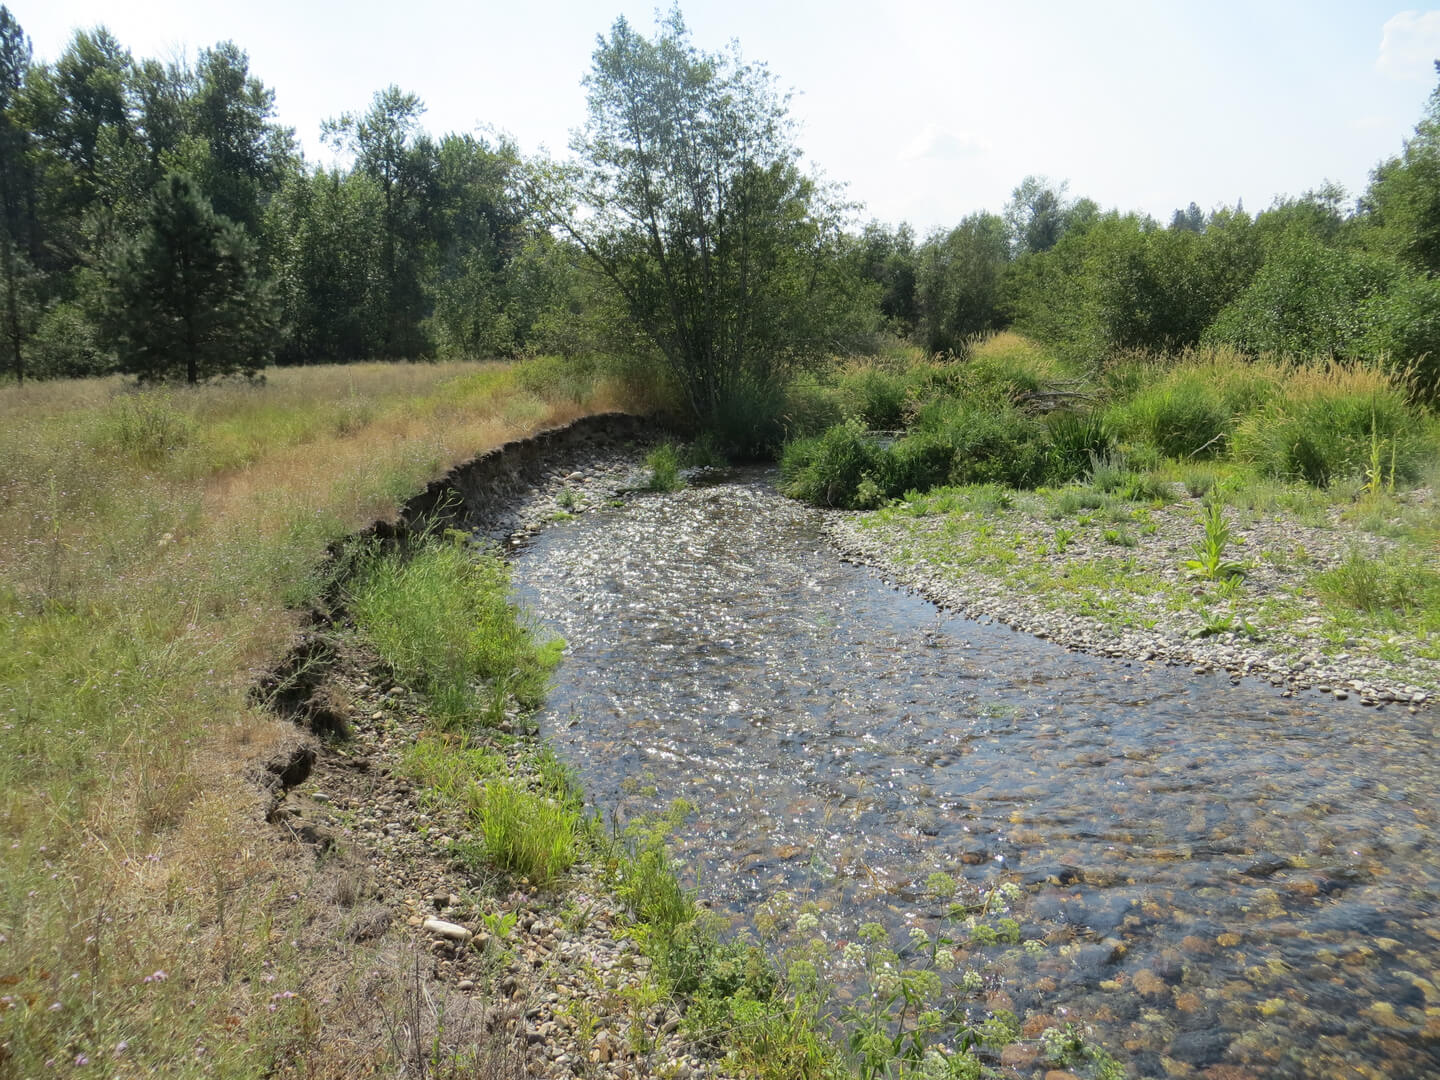 Neirbo HydroGeology